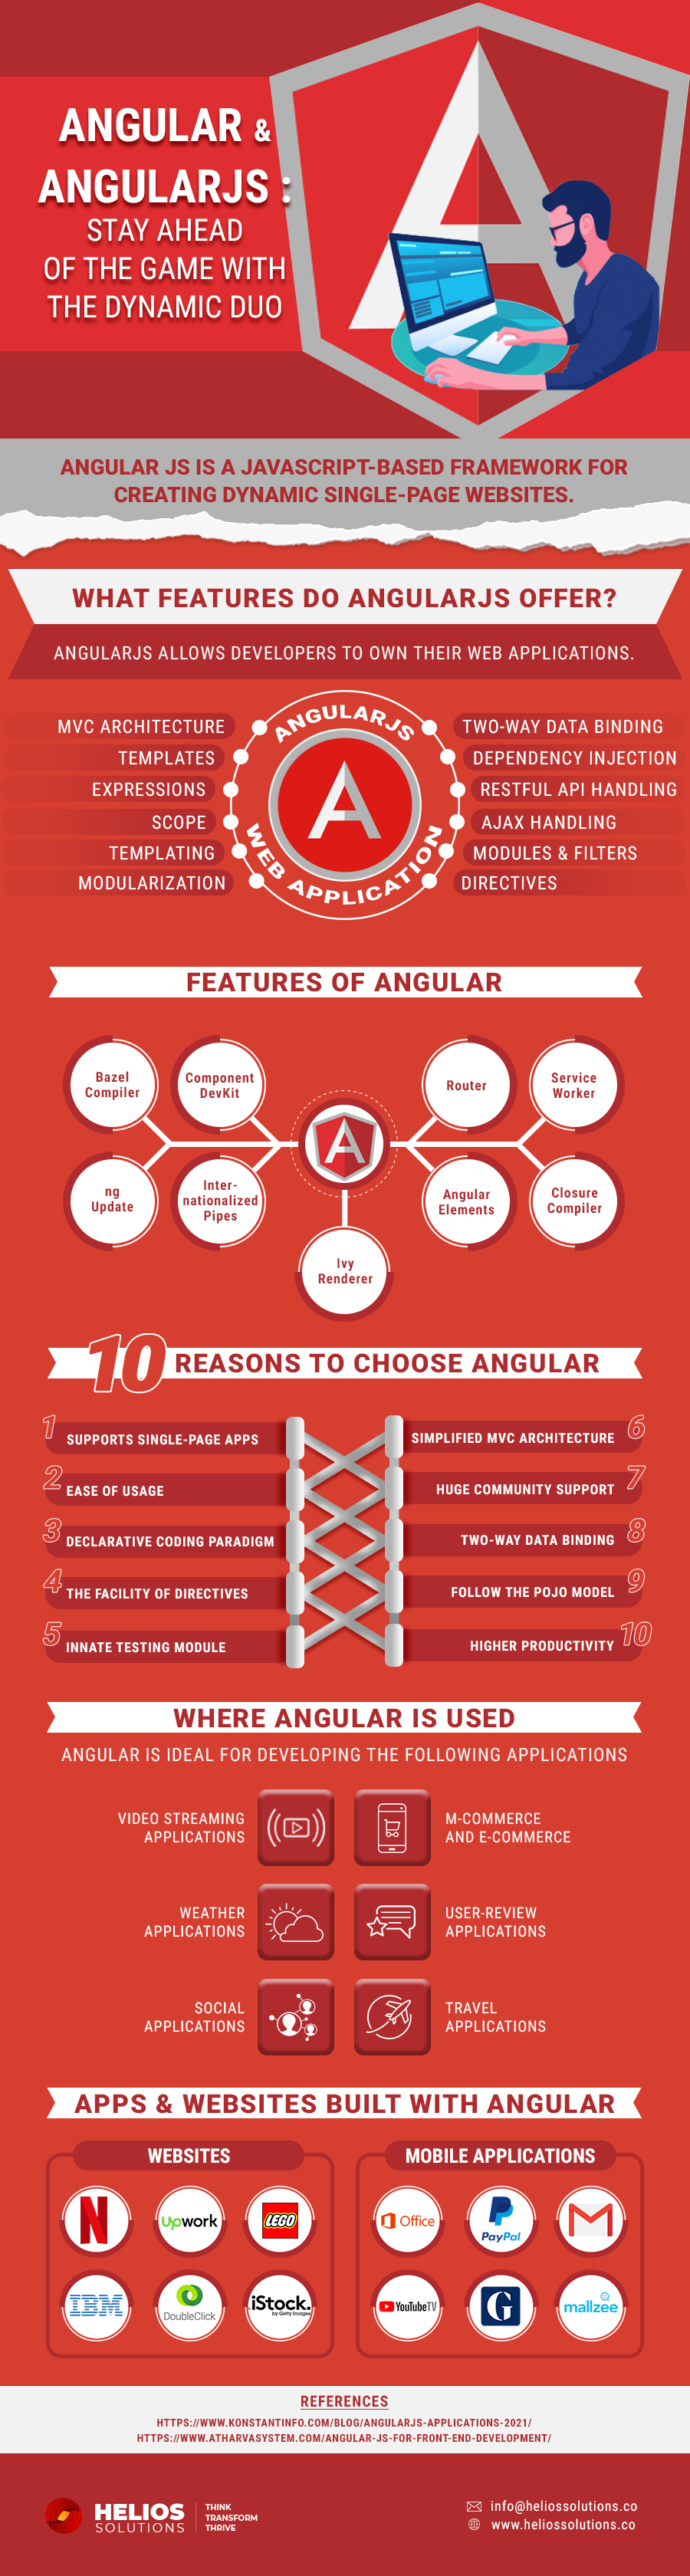 AngularJS & Angular: Stay Ahead of the Game with the Dynamic Duo